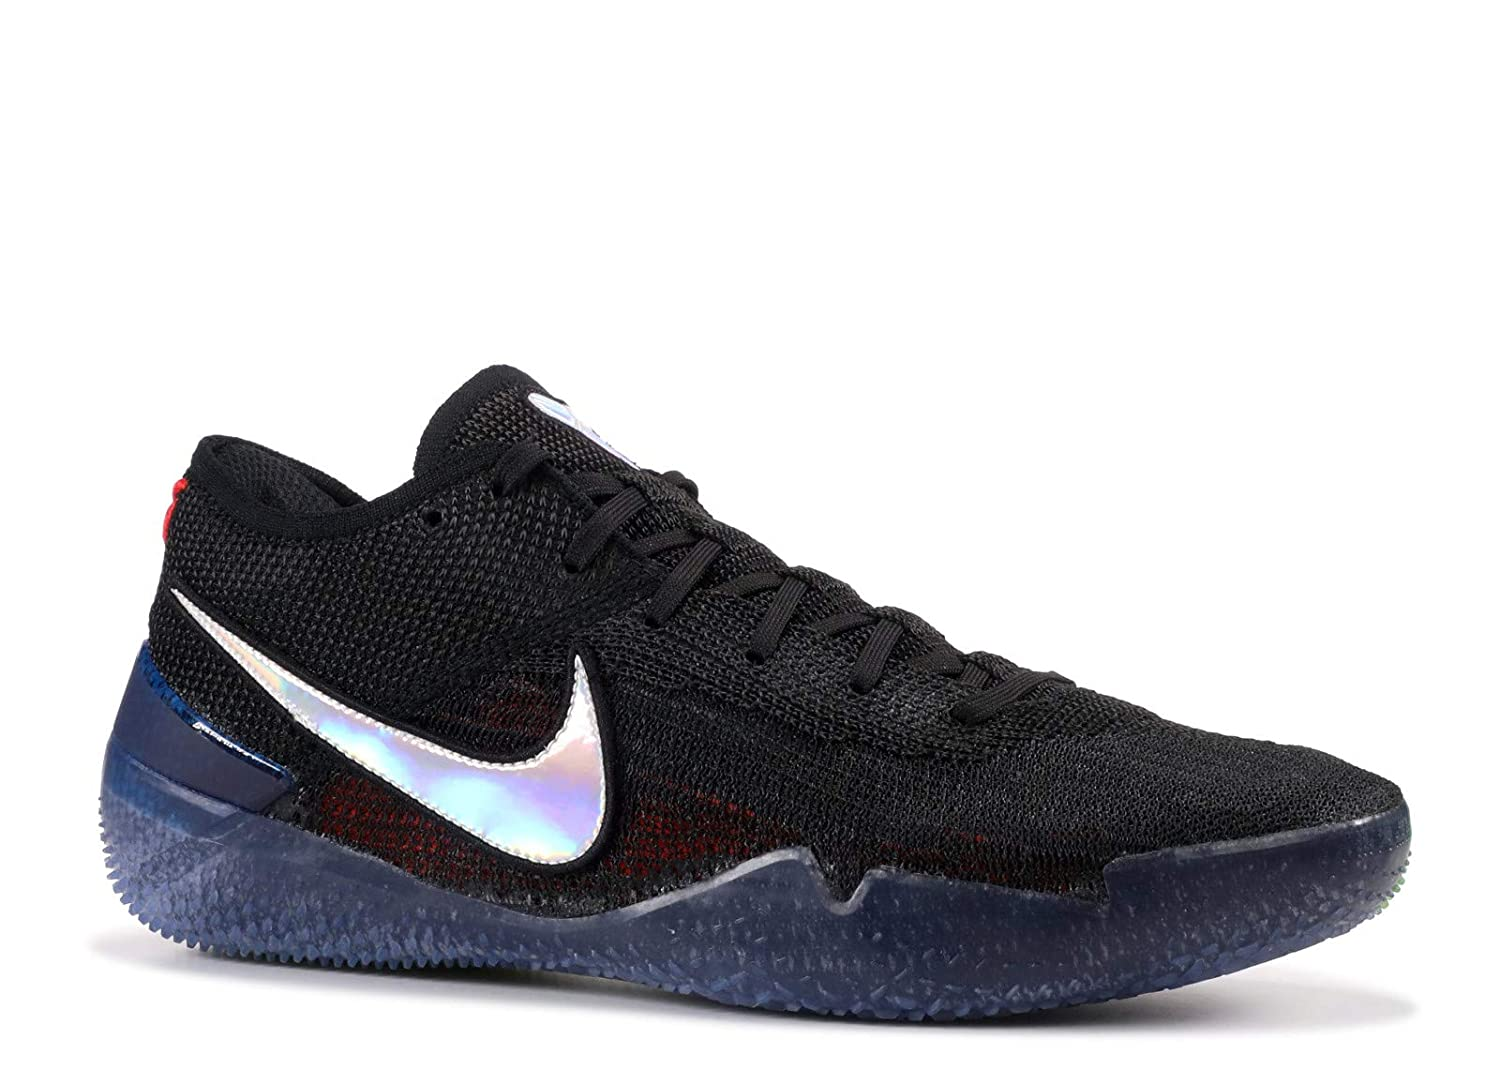 quality design 1dffe a5190 Amazon.com | Kobe AD NXT 360 - AQ1087-001 | Shoes